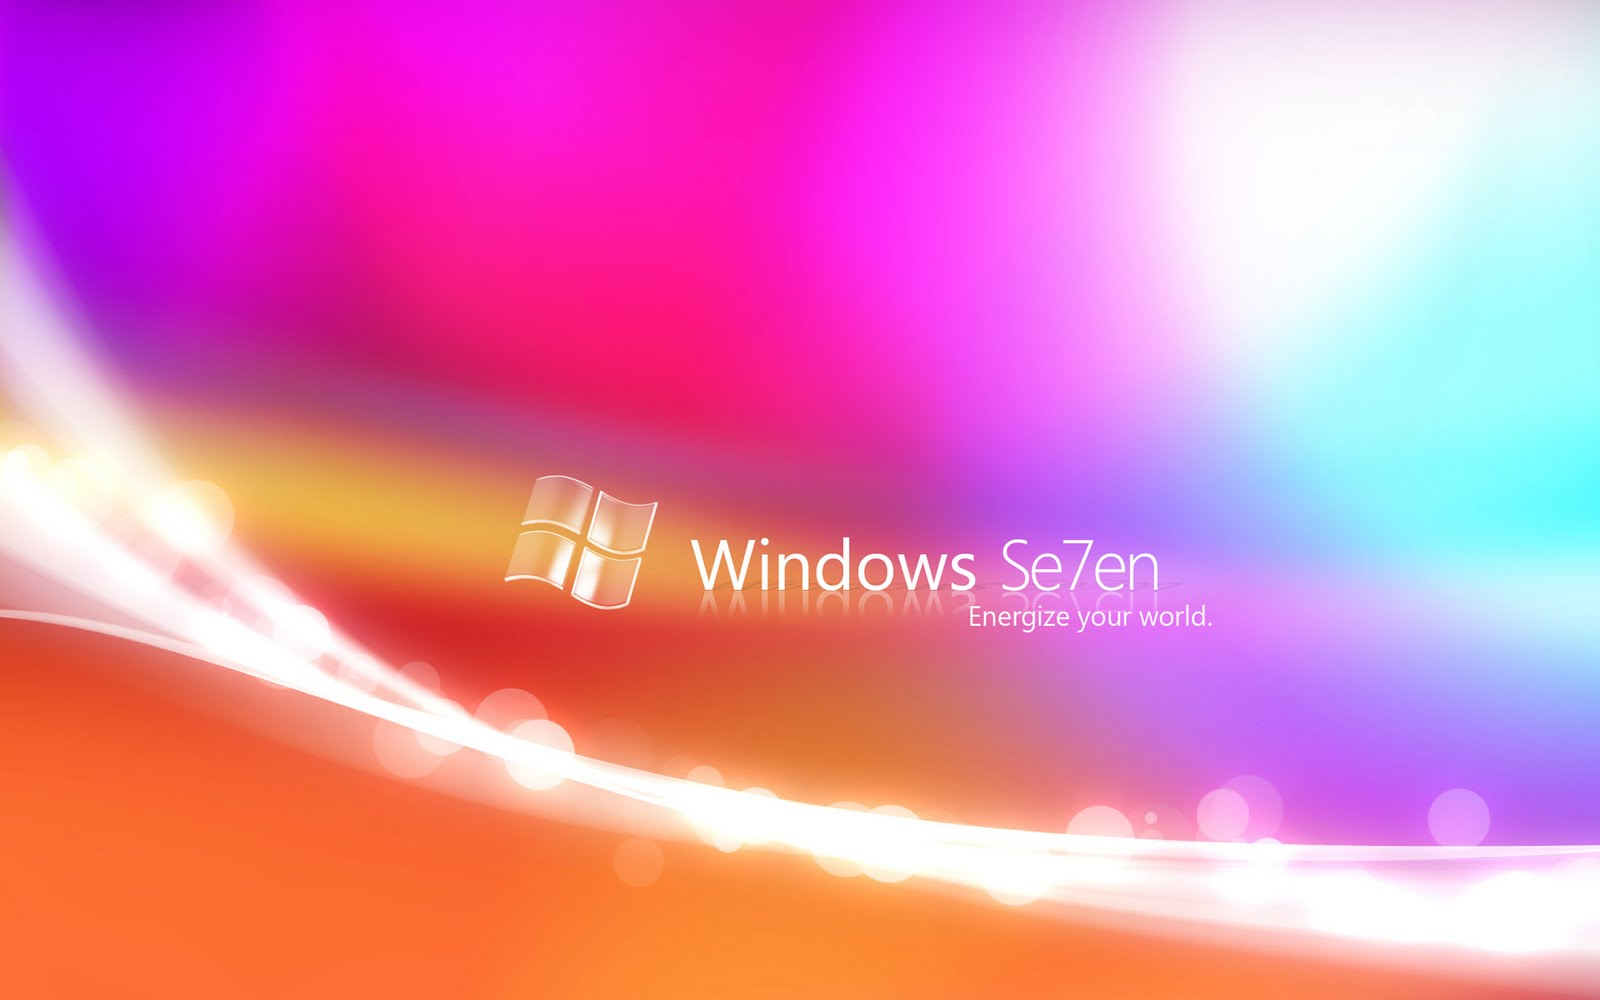 Free HD Windows 7 Wallpapers